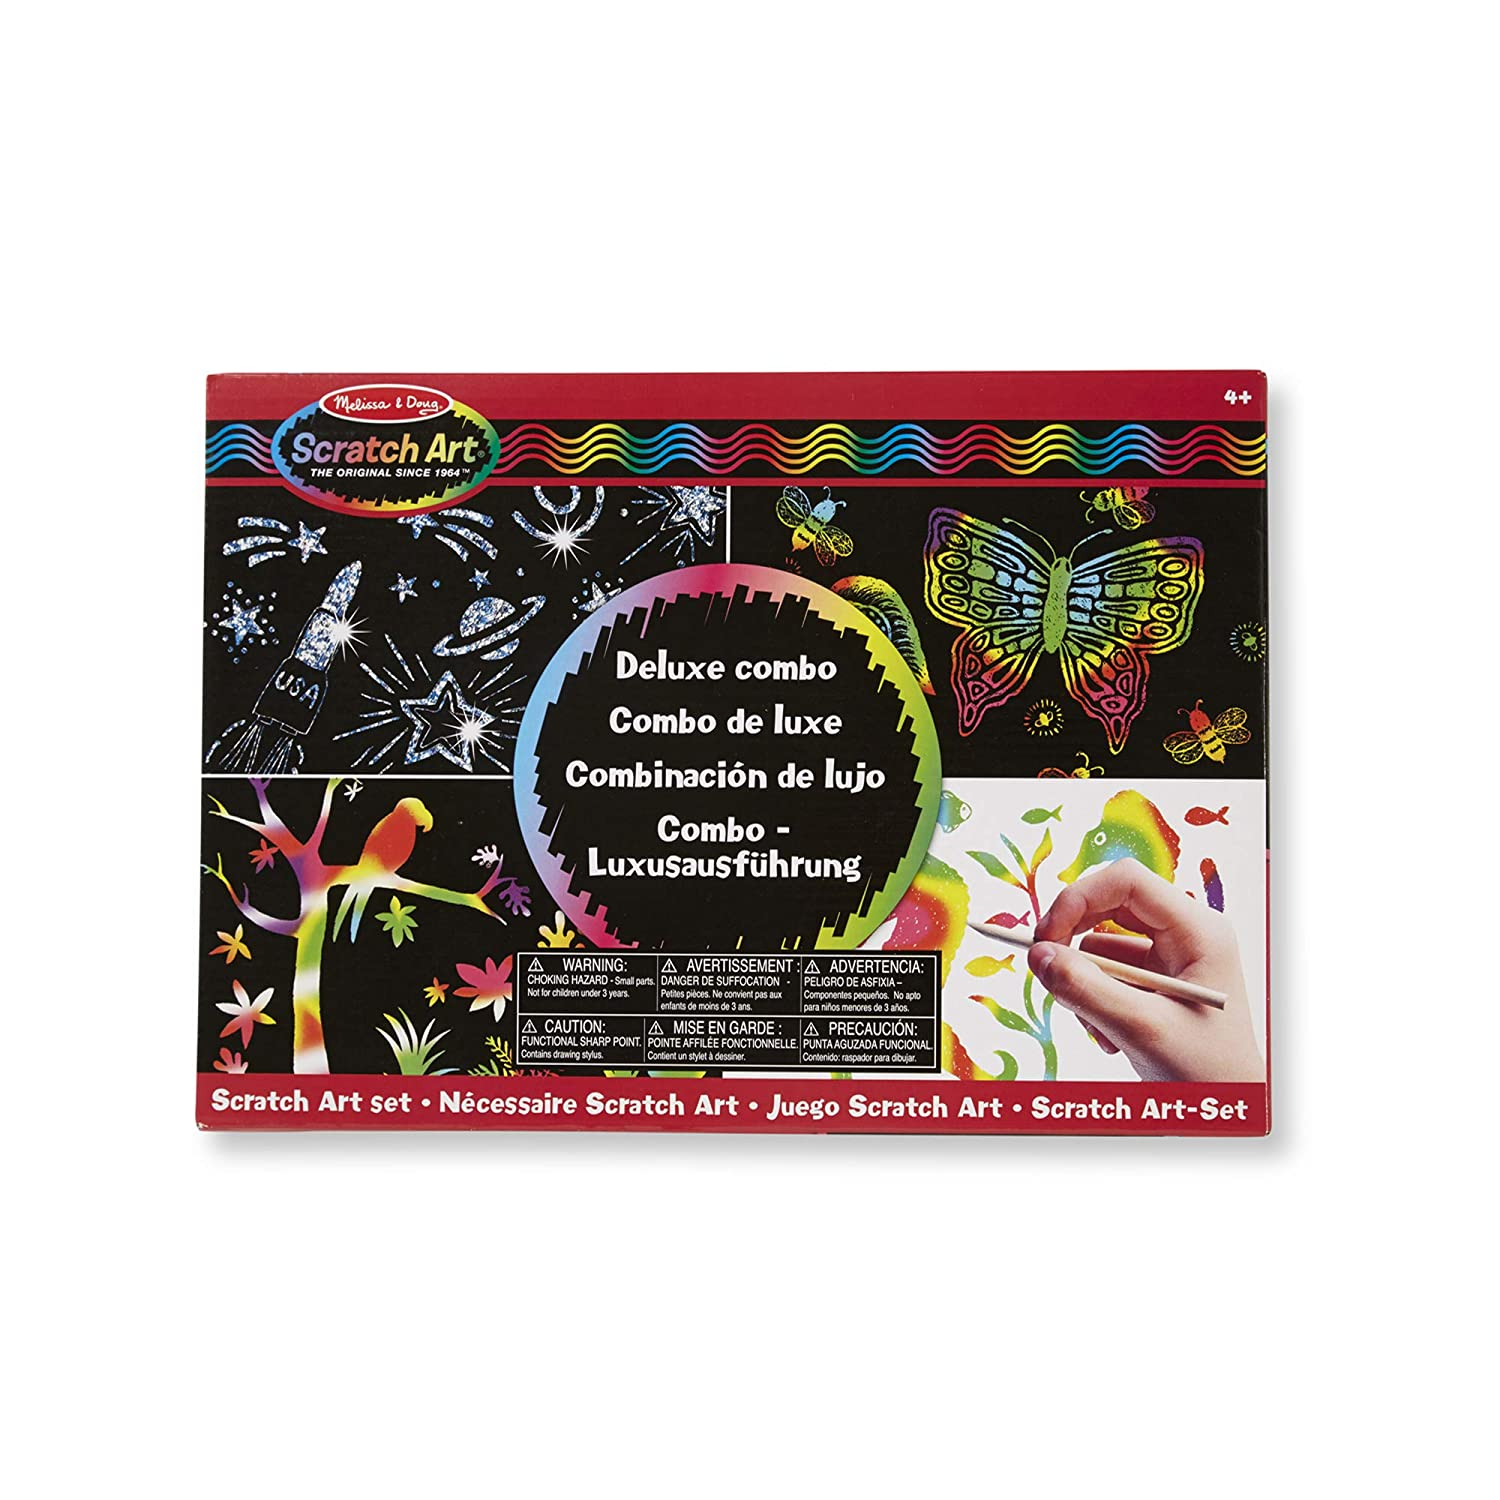 Melissa & Doug 15981 Deluxe Combo Scratch Art Set with 16 Boards, 2 Stylus Tools, 3 Frames